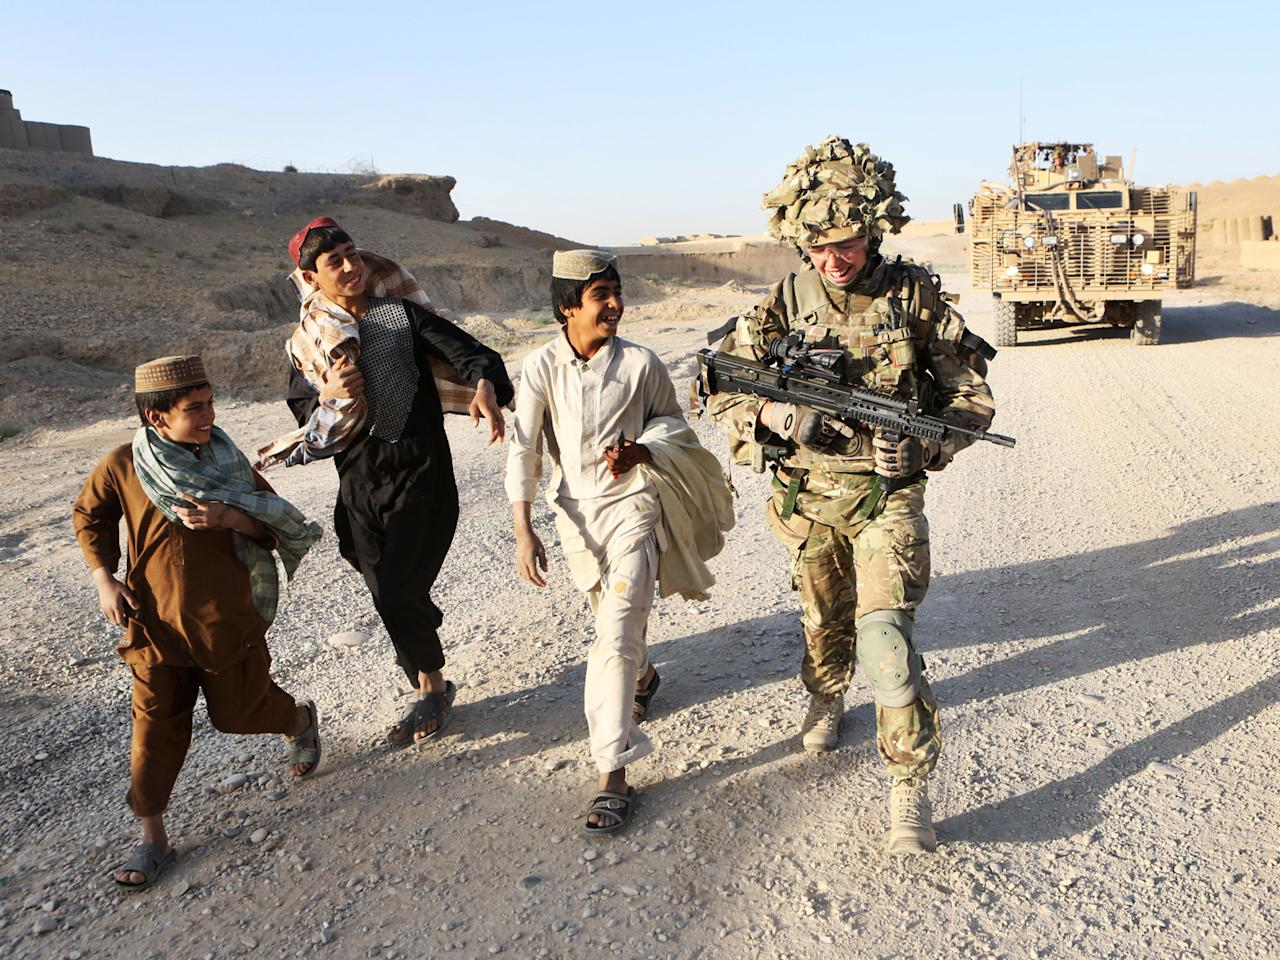 The Royal British Legion commissioned Alison Baskerville to accompany woman serving in the most dangerous parts of Afghanistan (Alison Baskerville)